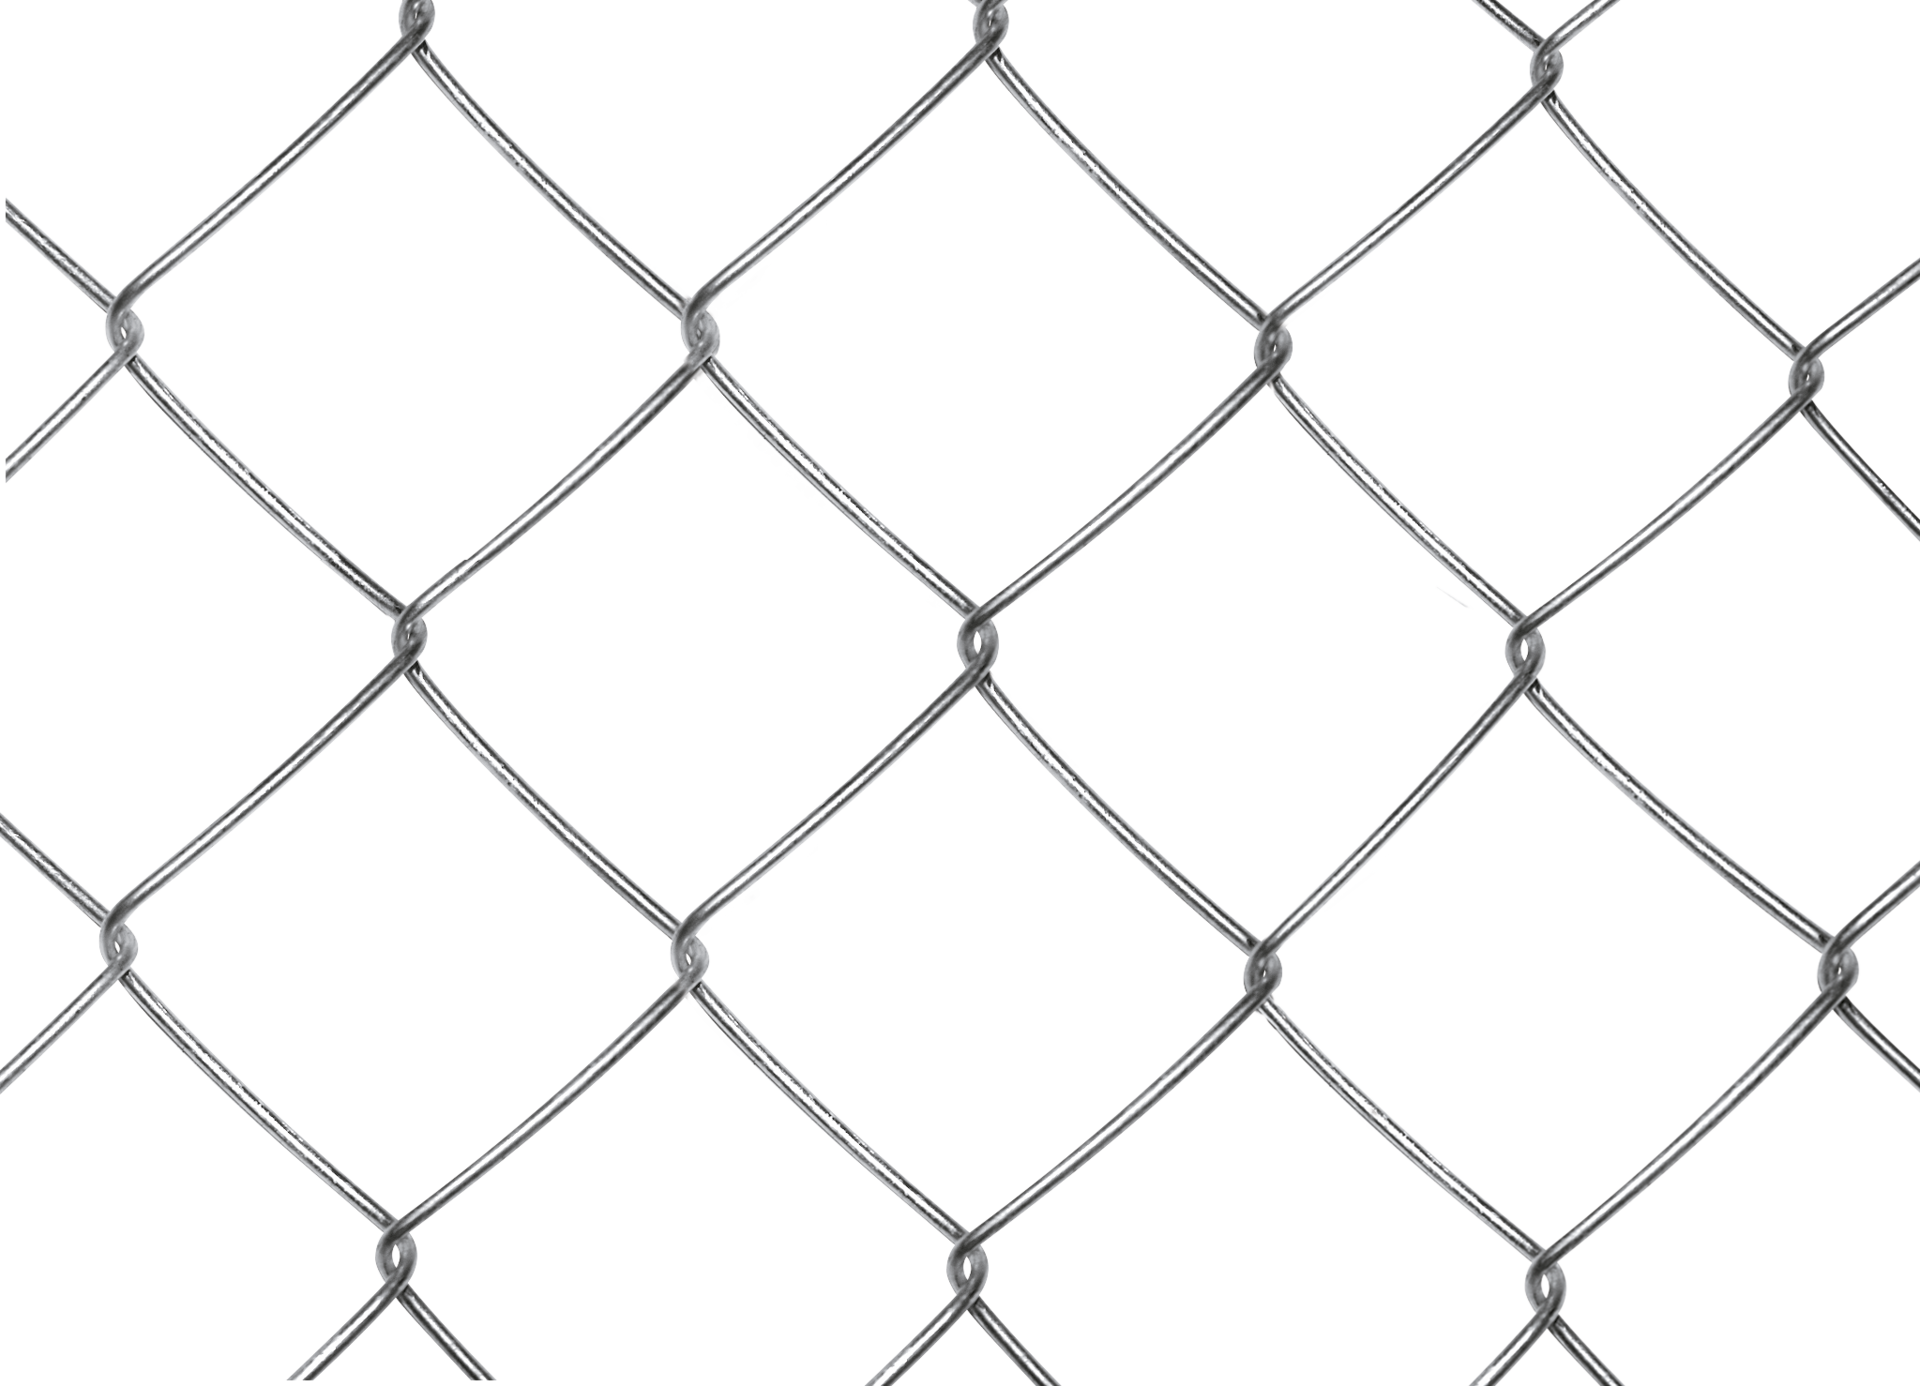 Chain link fence png. Fencing picket garden transprent